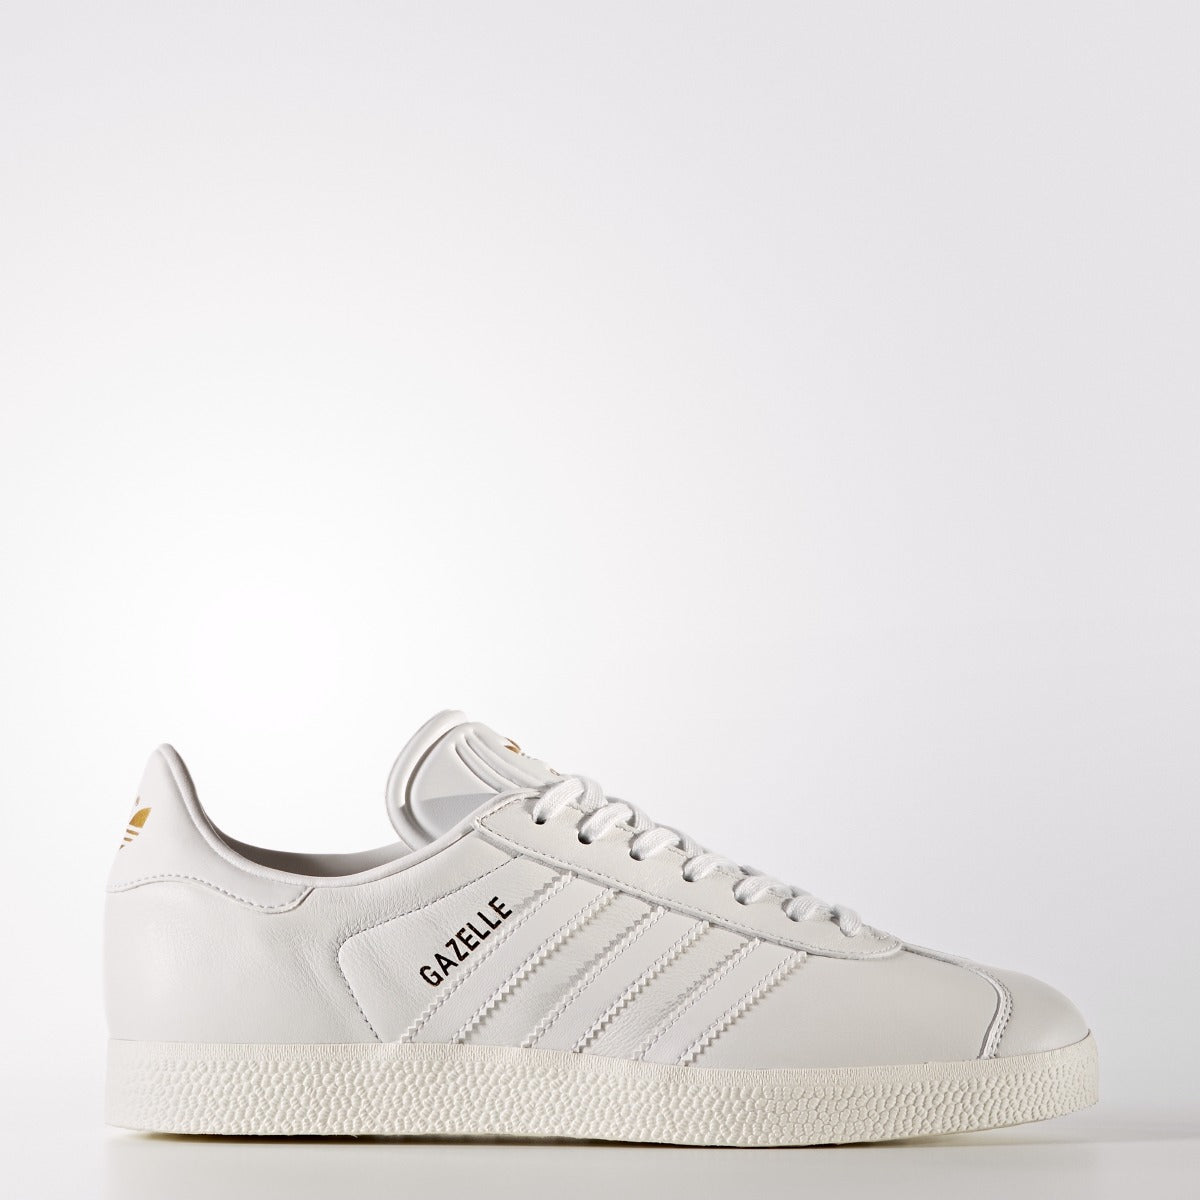 Women's adidas Originals Gazelle Shoes Crystal White 5 WHITE